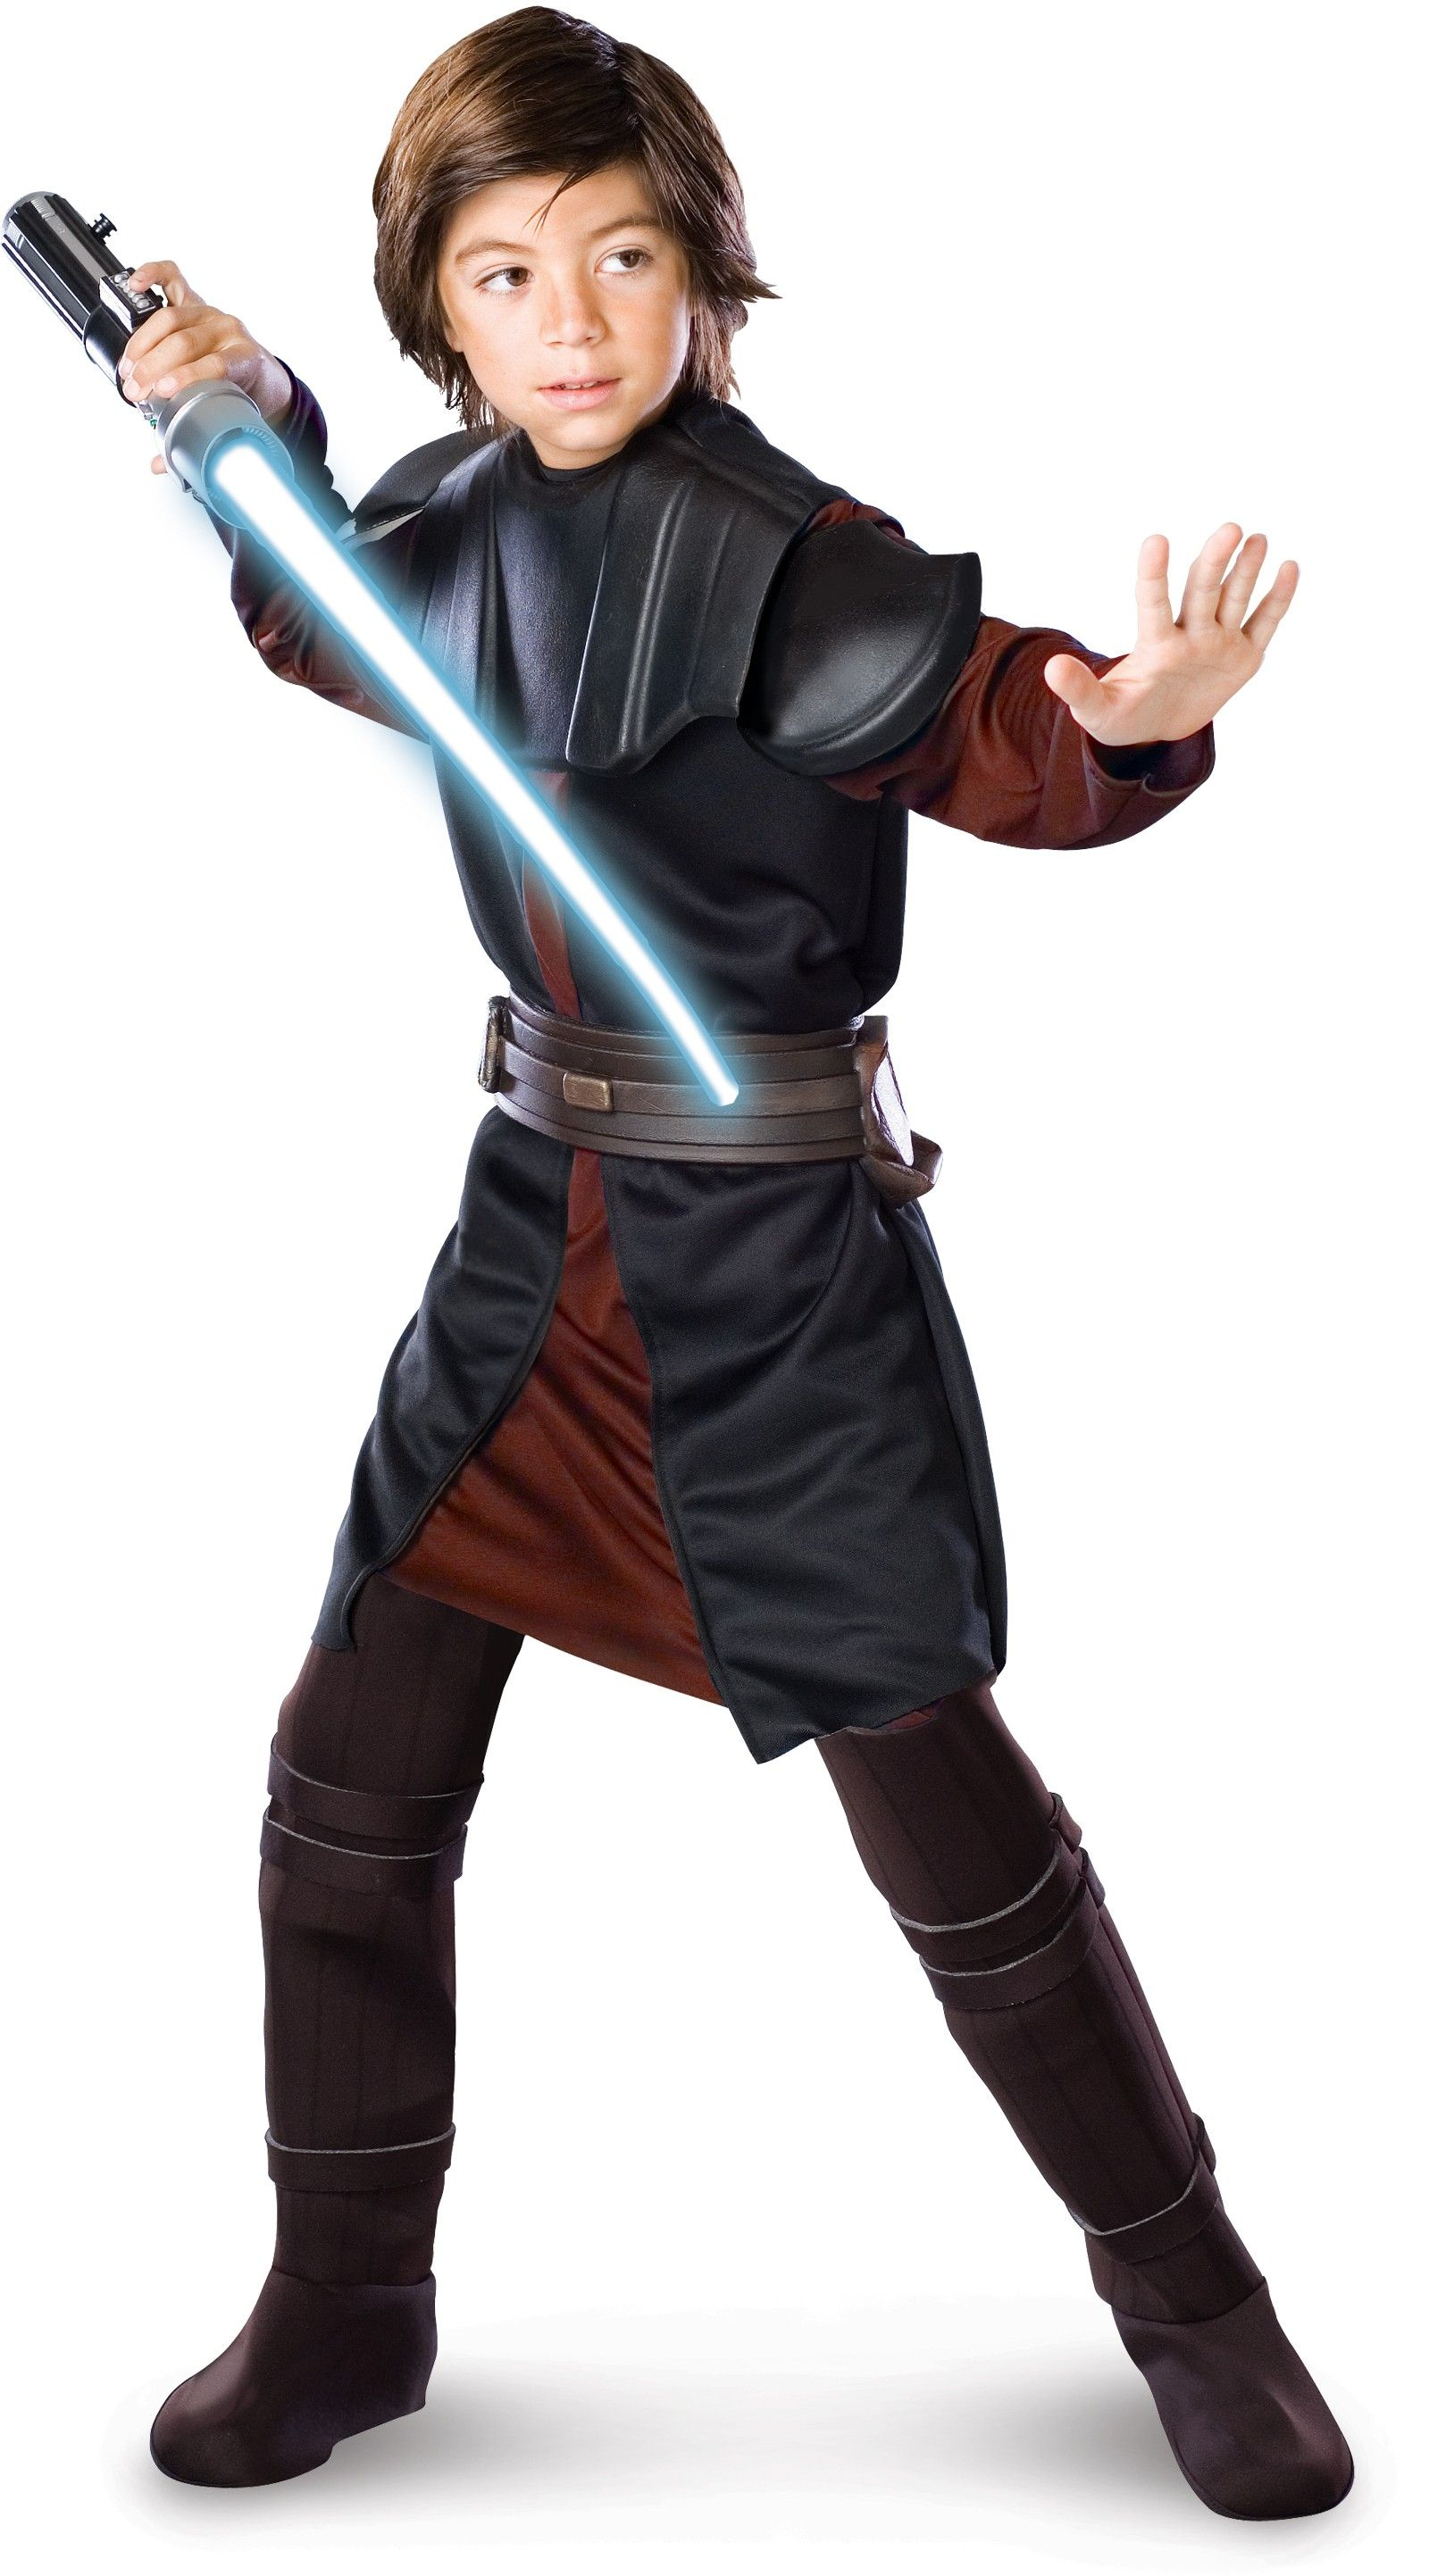 kids skywalker costume - Google Search  sc 1 st  Pinterest & kids skywalker costume - Google Search | costumes | Pinterest | Costumes